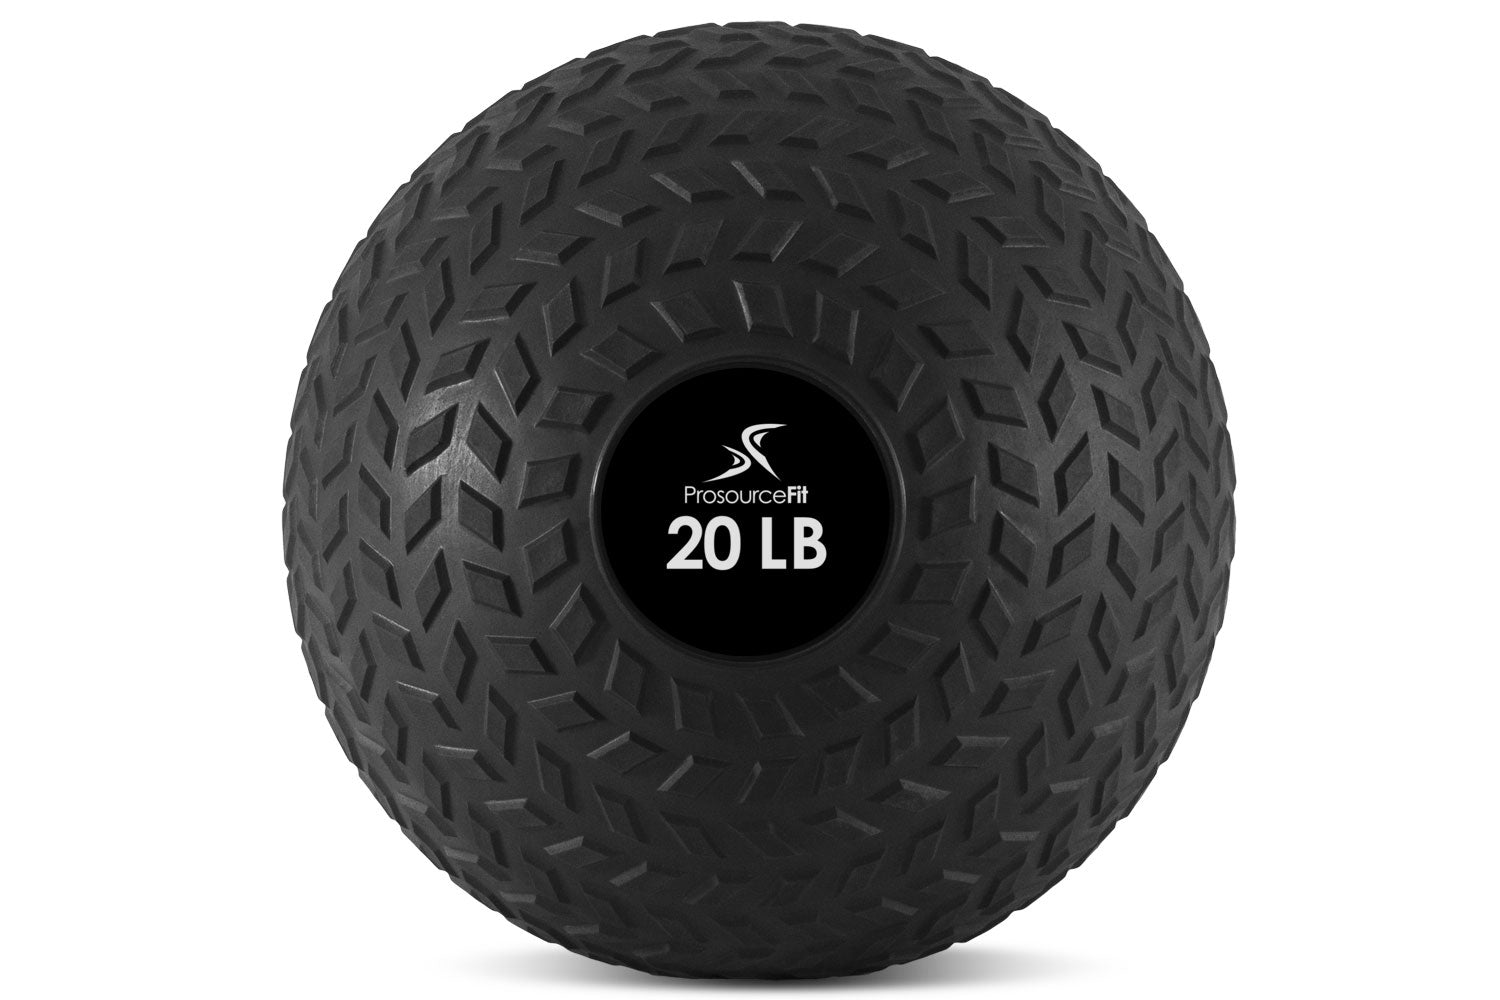 20 lb Tread Slam Ball